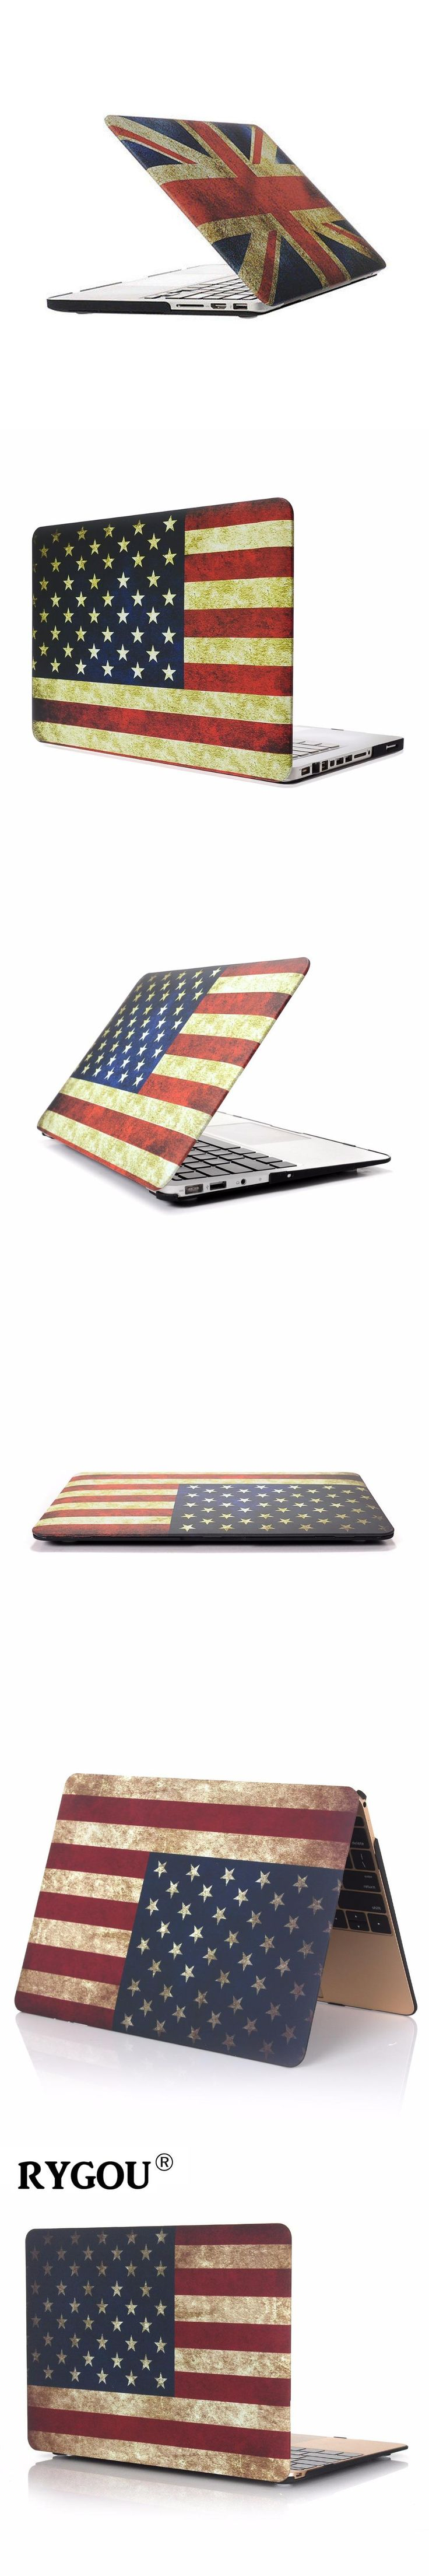 RYGOU Case for New Macbook pro 2016 US/UK Flag Rubberized Finsh Hard Case for Apple Macbook Air Pro Retina 11 12 13 15 inch